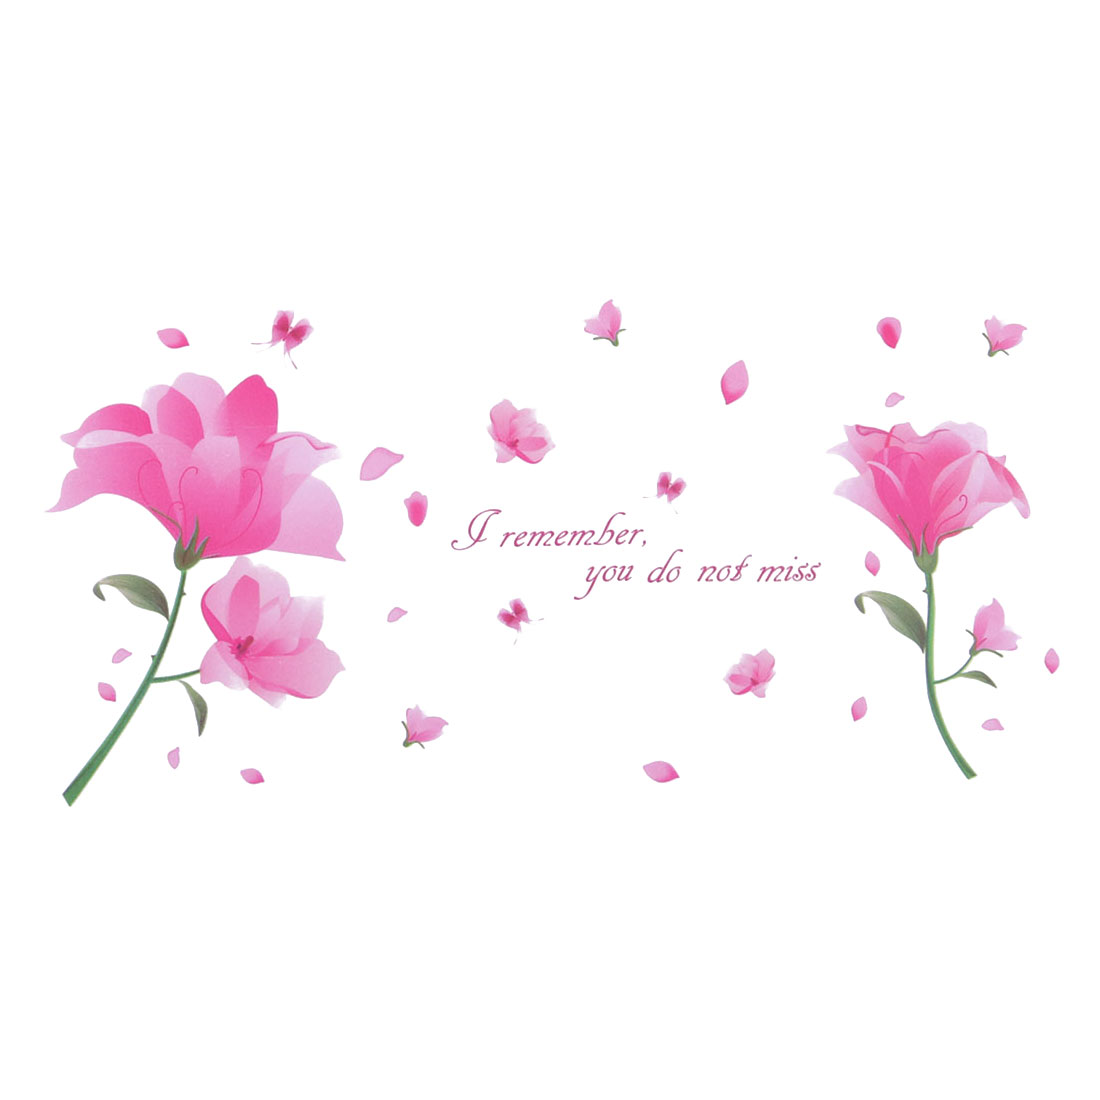 Home Bedroom PVC Flower Petals Pattern Self-adhesive Removable Wall Sticker Decal Pink